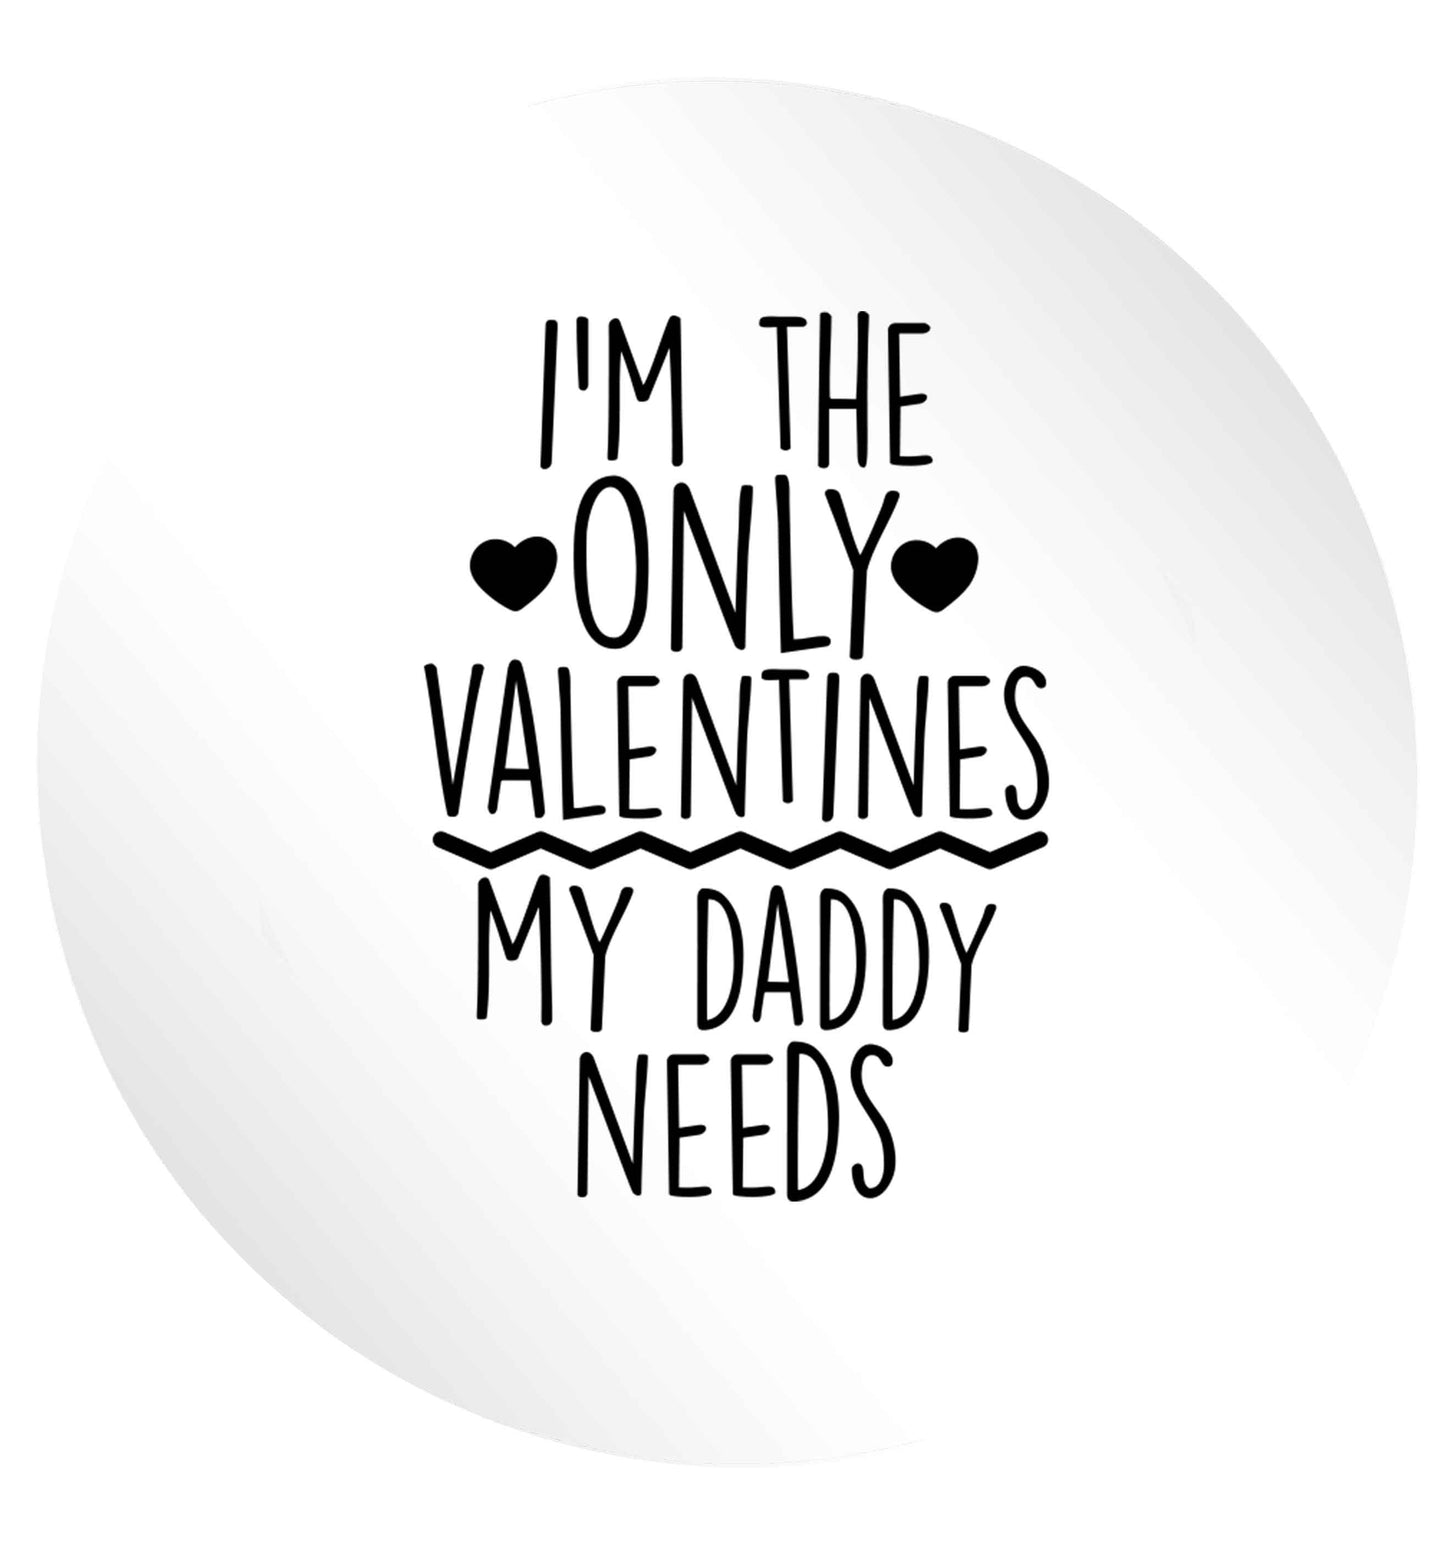 I'm the only valentines my daddy needs 24 @ 45mm matt circle stickers